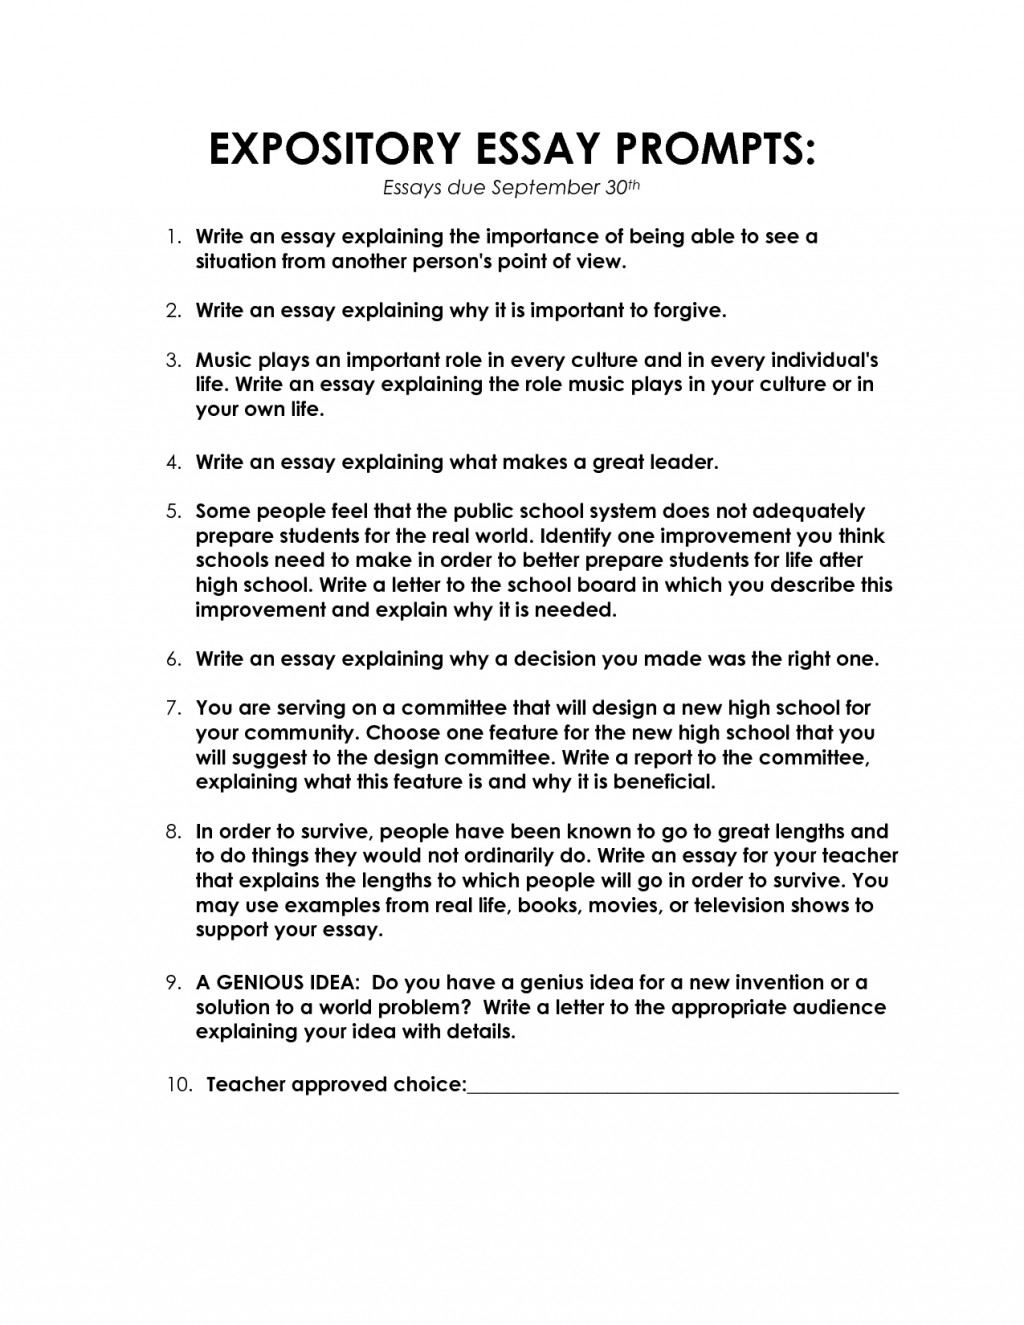 003 Expository Essay Topics Writings And Essays Explanatory For High Rega Things To Help You Write An Awesome 4th Grade Prompt School Prompts 7th Large